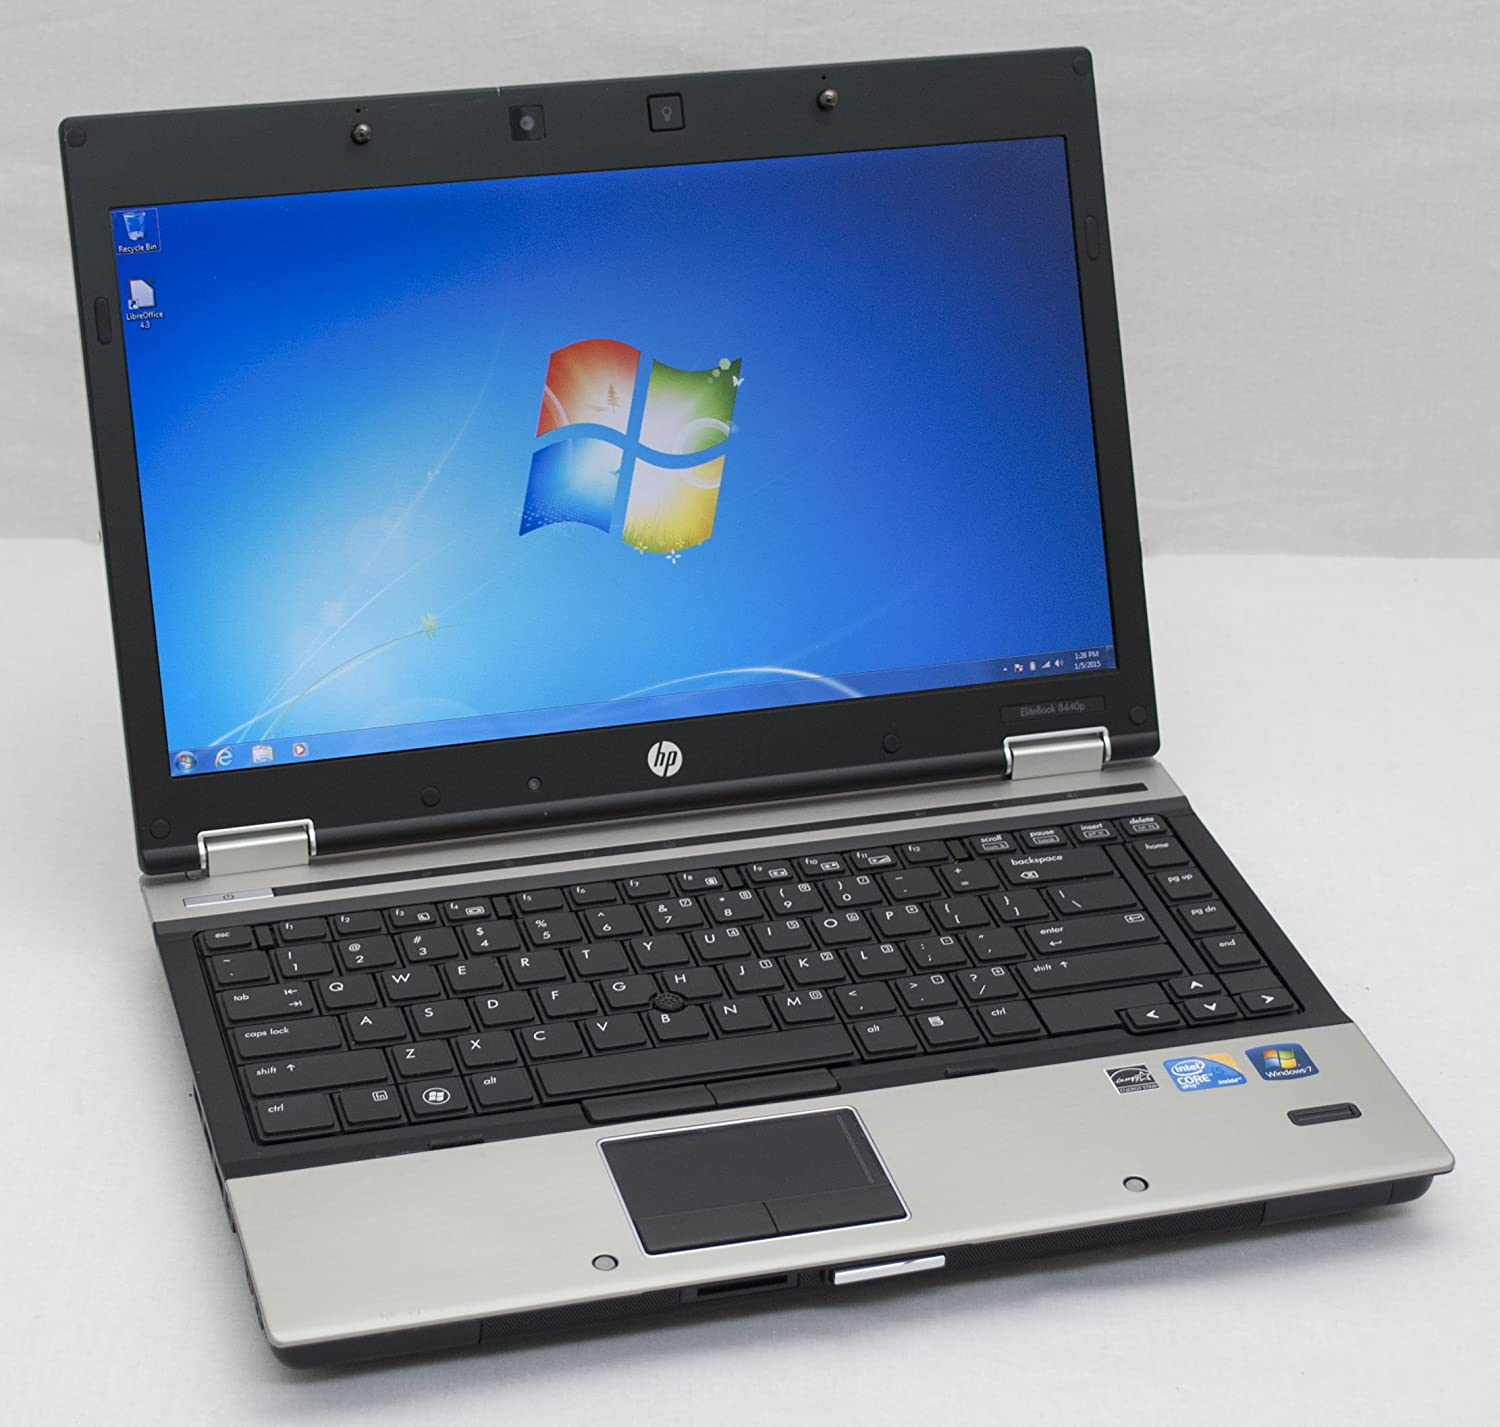 HP Elitebook 8440p Laptop-Core i5 2.4 GHz-8 GB DDR3-1 TB HDD-DVD/RW-Win 7 Pro 64 Bit